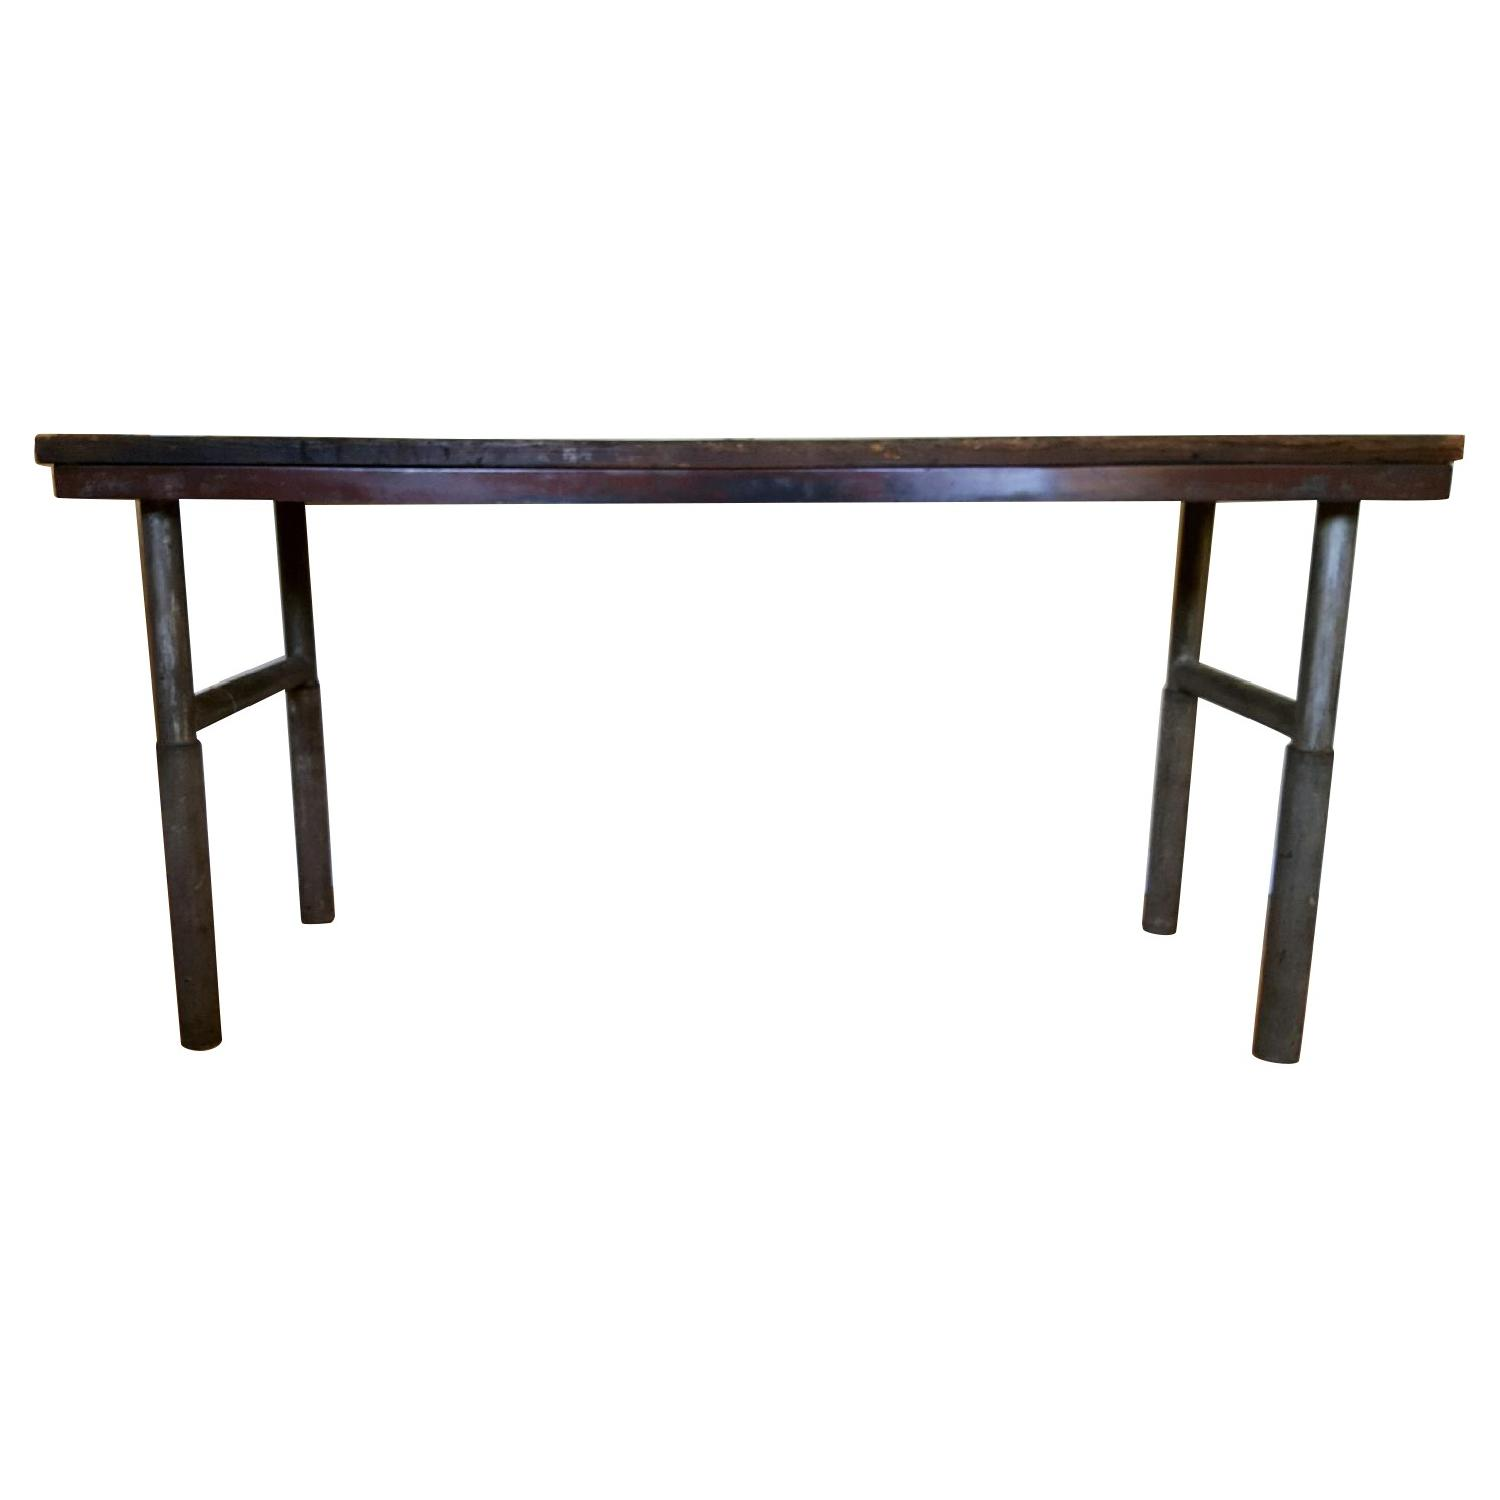 Vintage Industrial Chic Table/Workbench